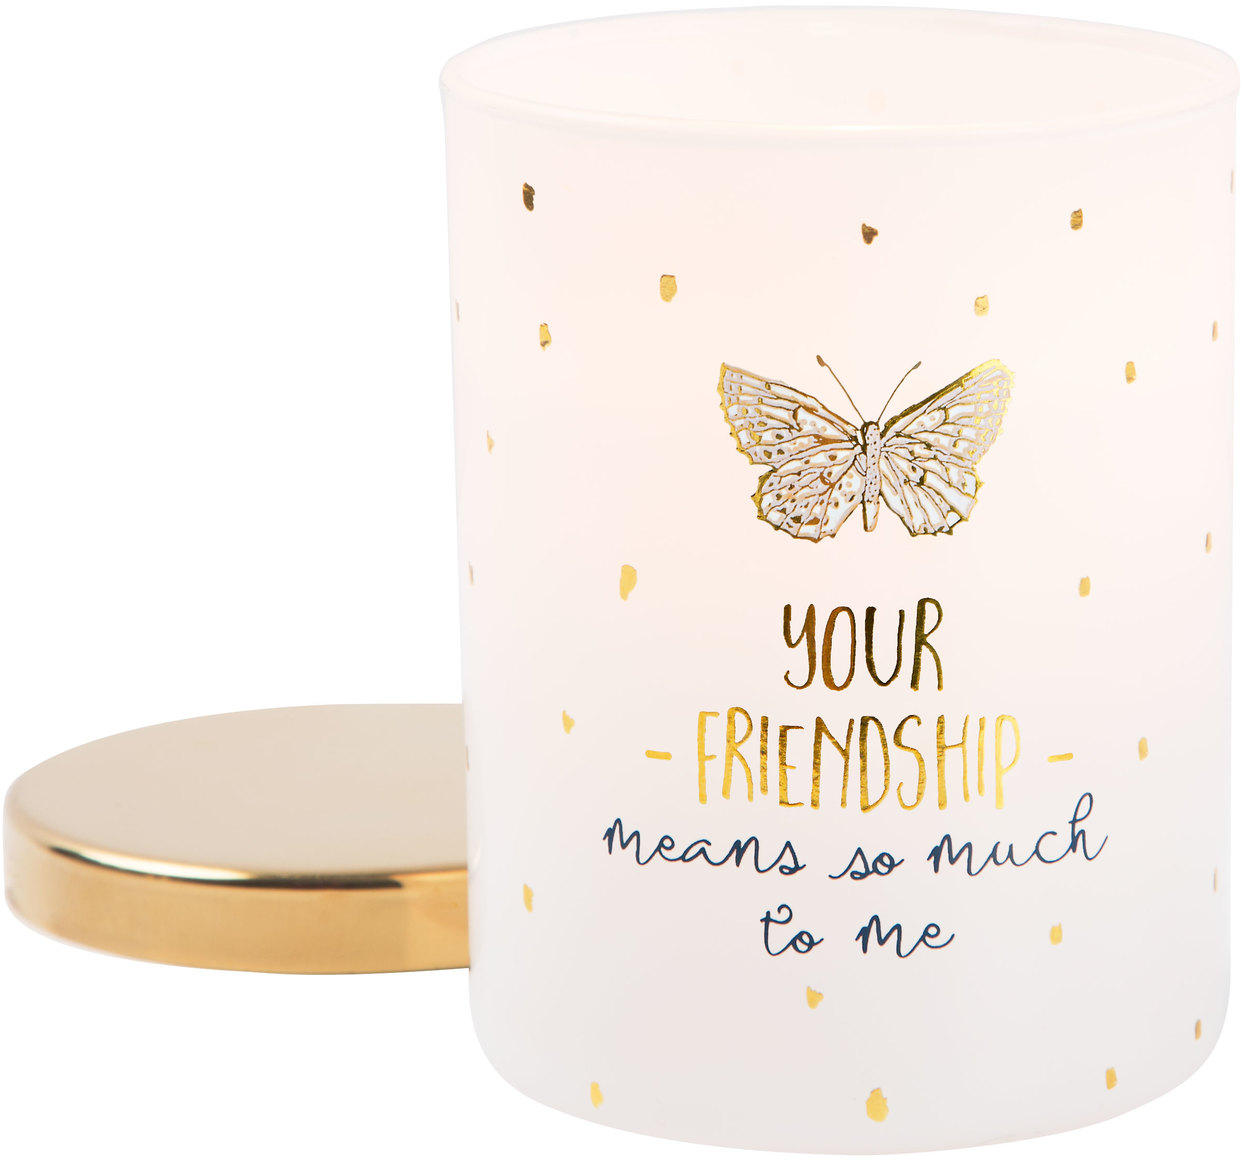 Friendship by Heartful Love - Friendship - 7oz 100% Soy Wax Candle Scent: Fresh Cotton